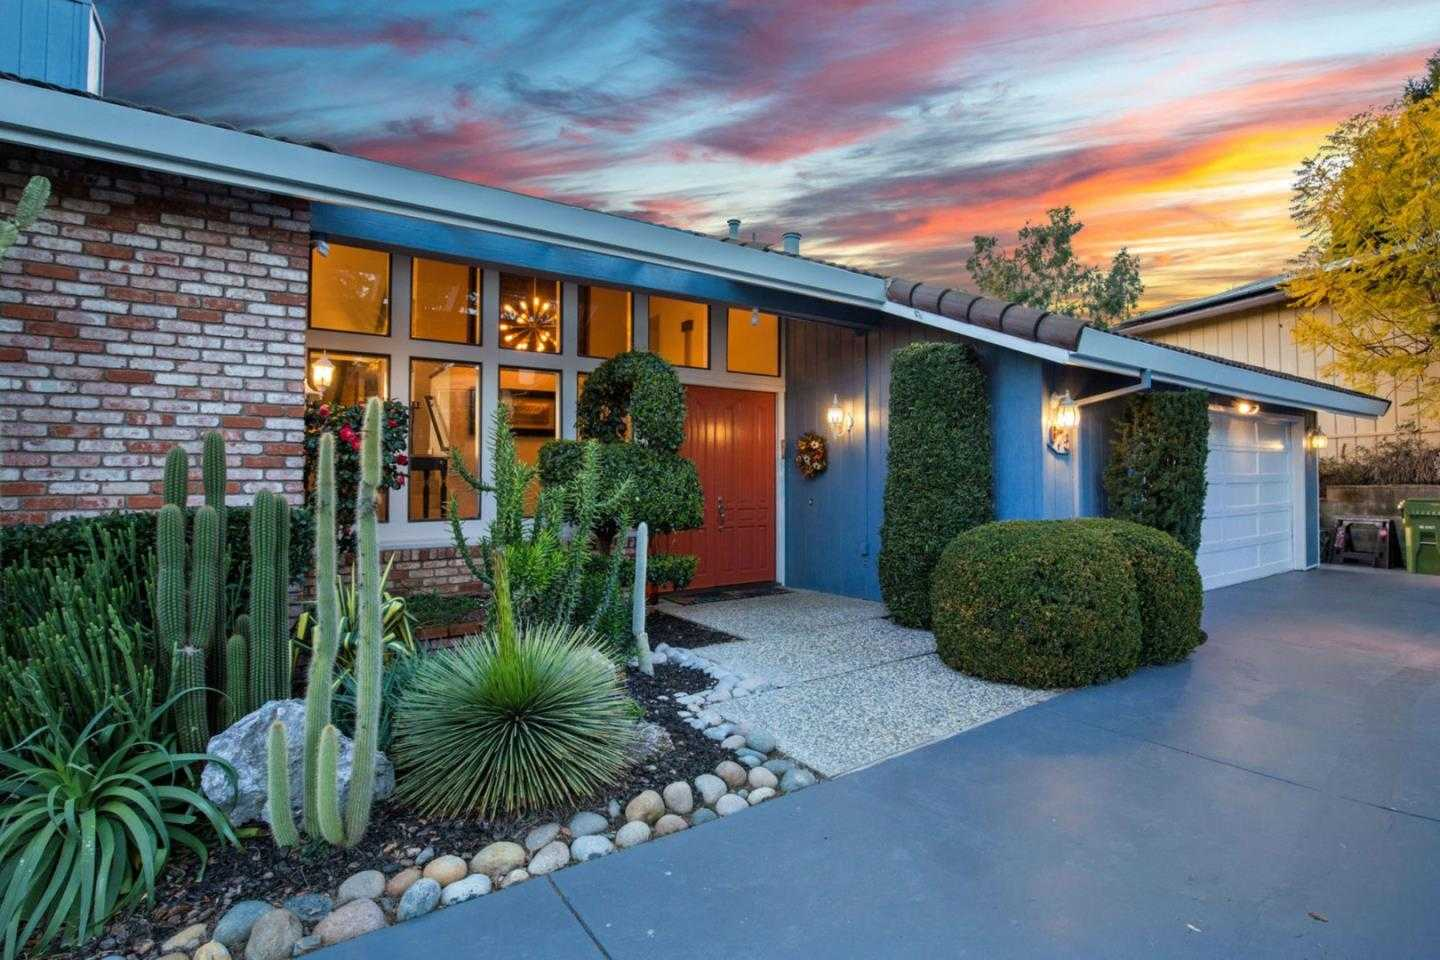 $1,350,000 - 4Br/3Ba -  for Sale in Scotts Valley